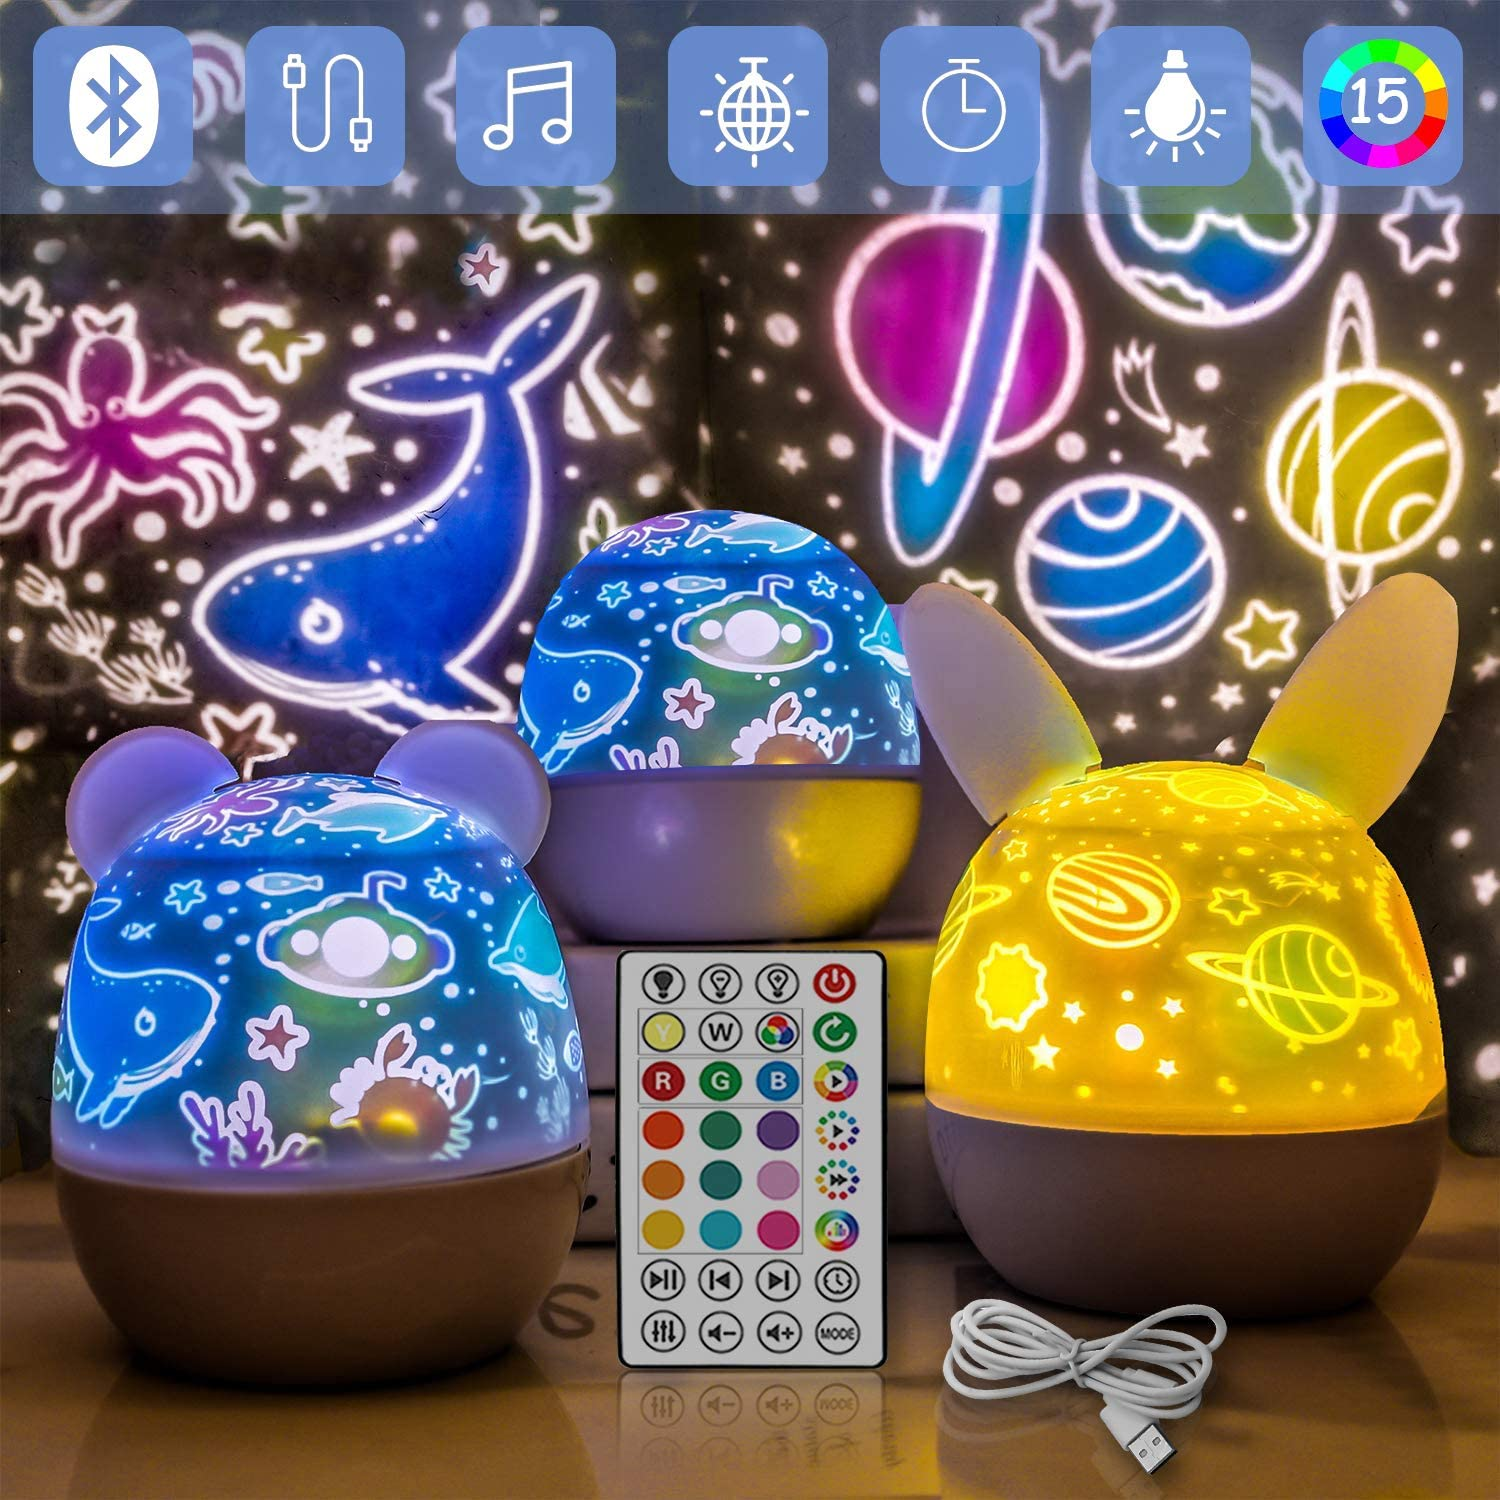 Night Light Projector for Kids,Star Ocean Projector with 6 Films,Bluetooth Speaker Rotation Night Lamp, USB Charging Night Light 3 Appearances,15 Interchangeable Lighting Modes,Gifts for Baby Bedroom